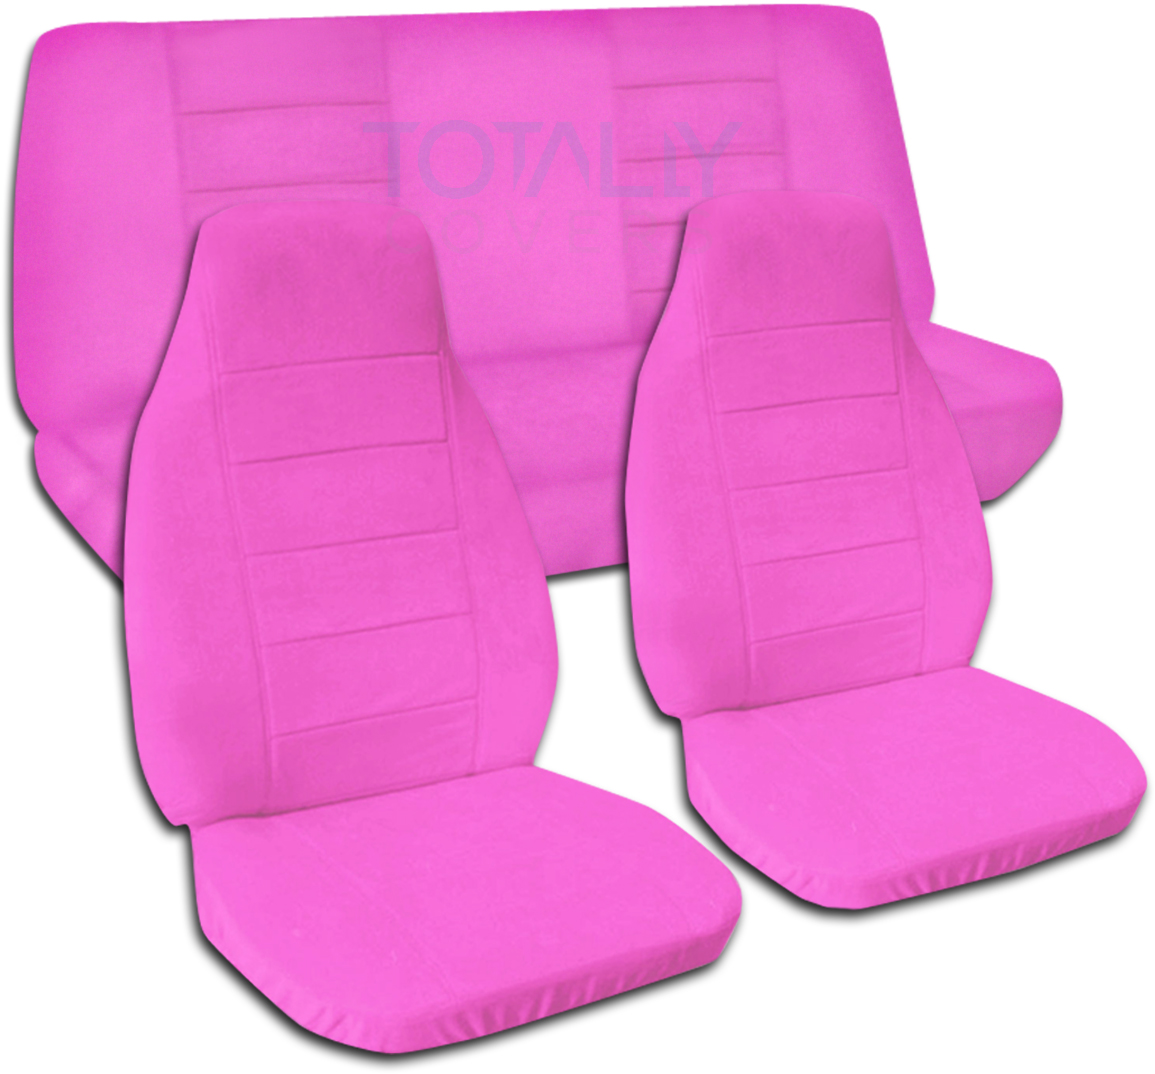 chair covers pink selig lounge solid color car seat full set semi custom black